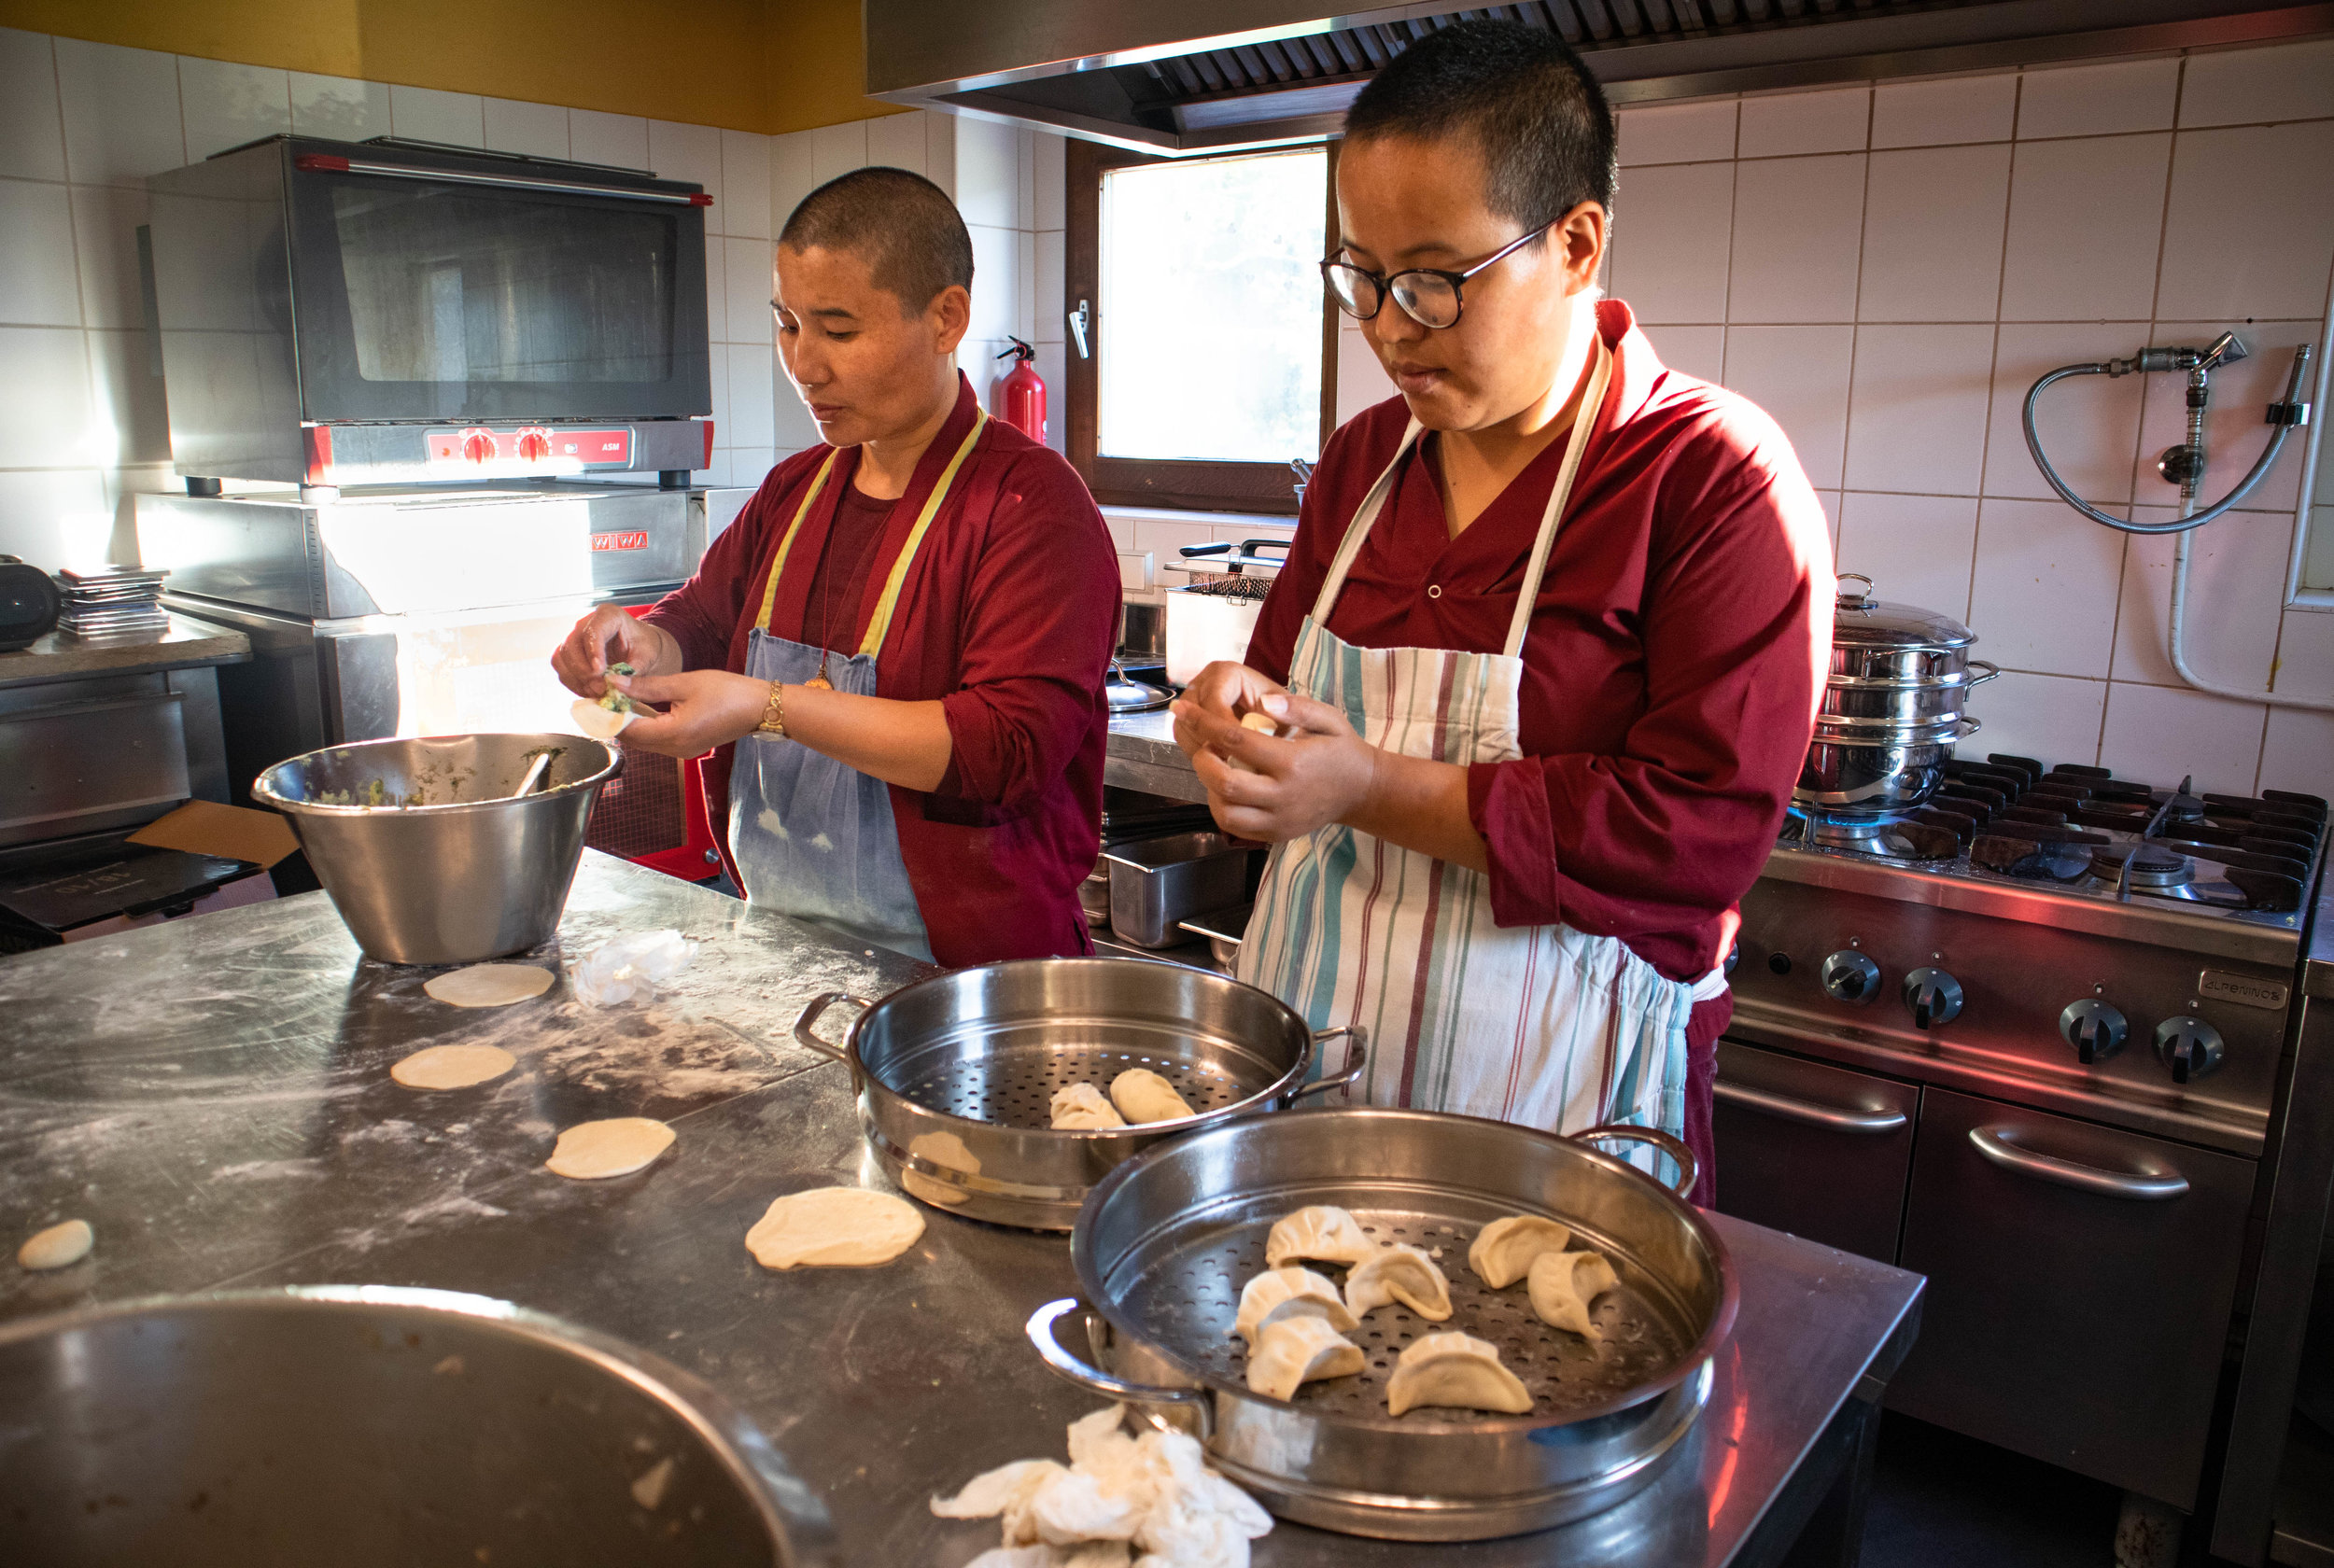 Nuns making fabulous dumplings by hand!